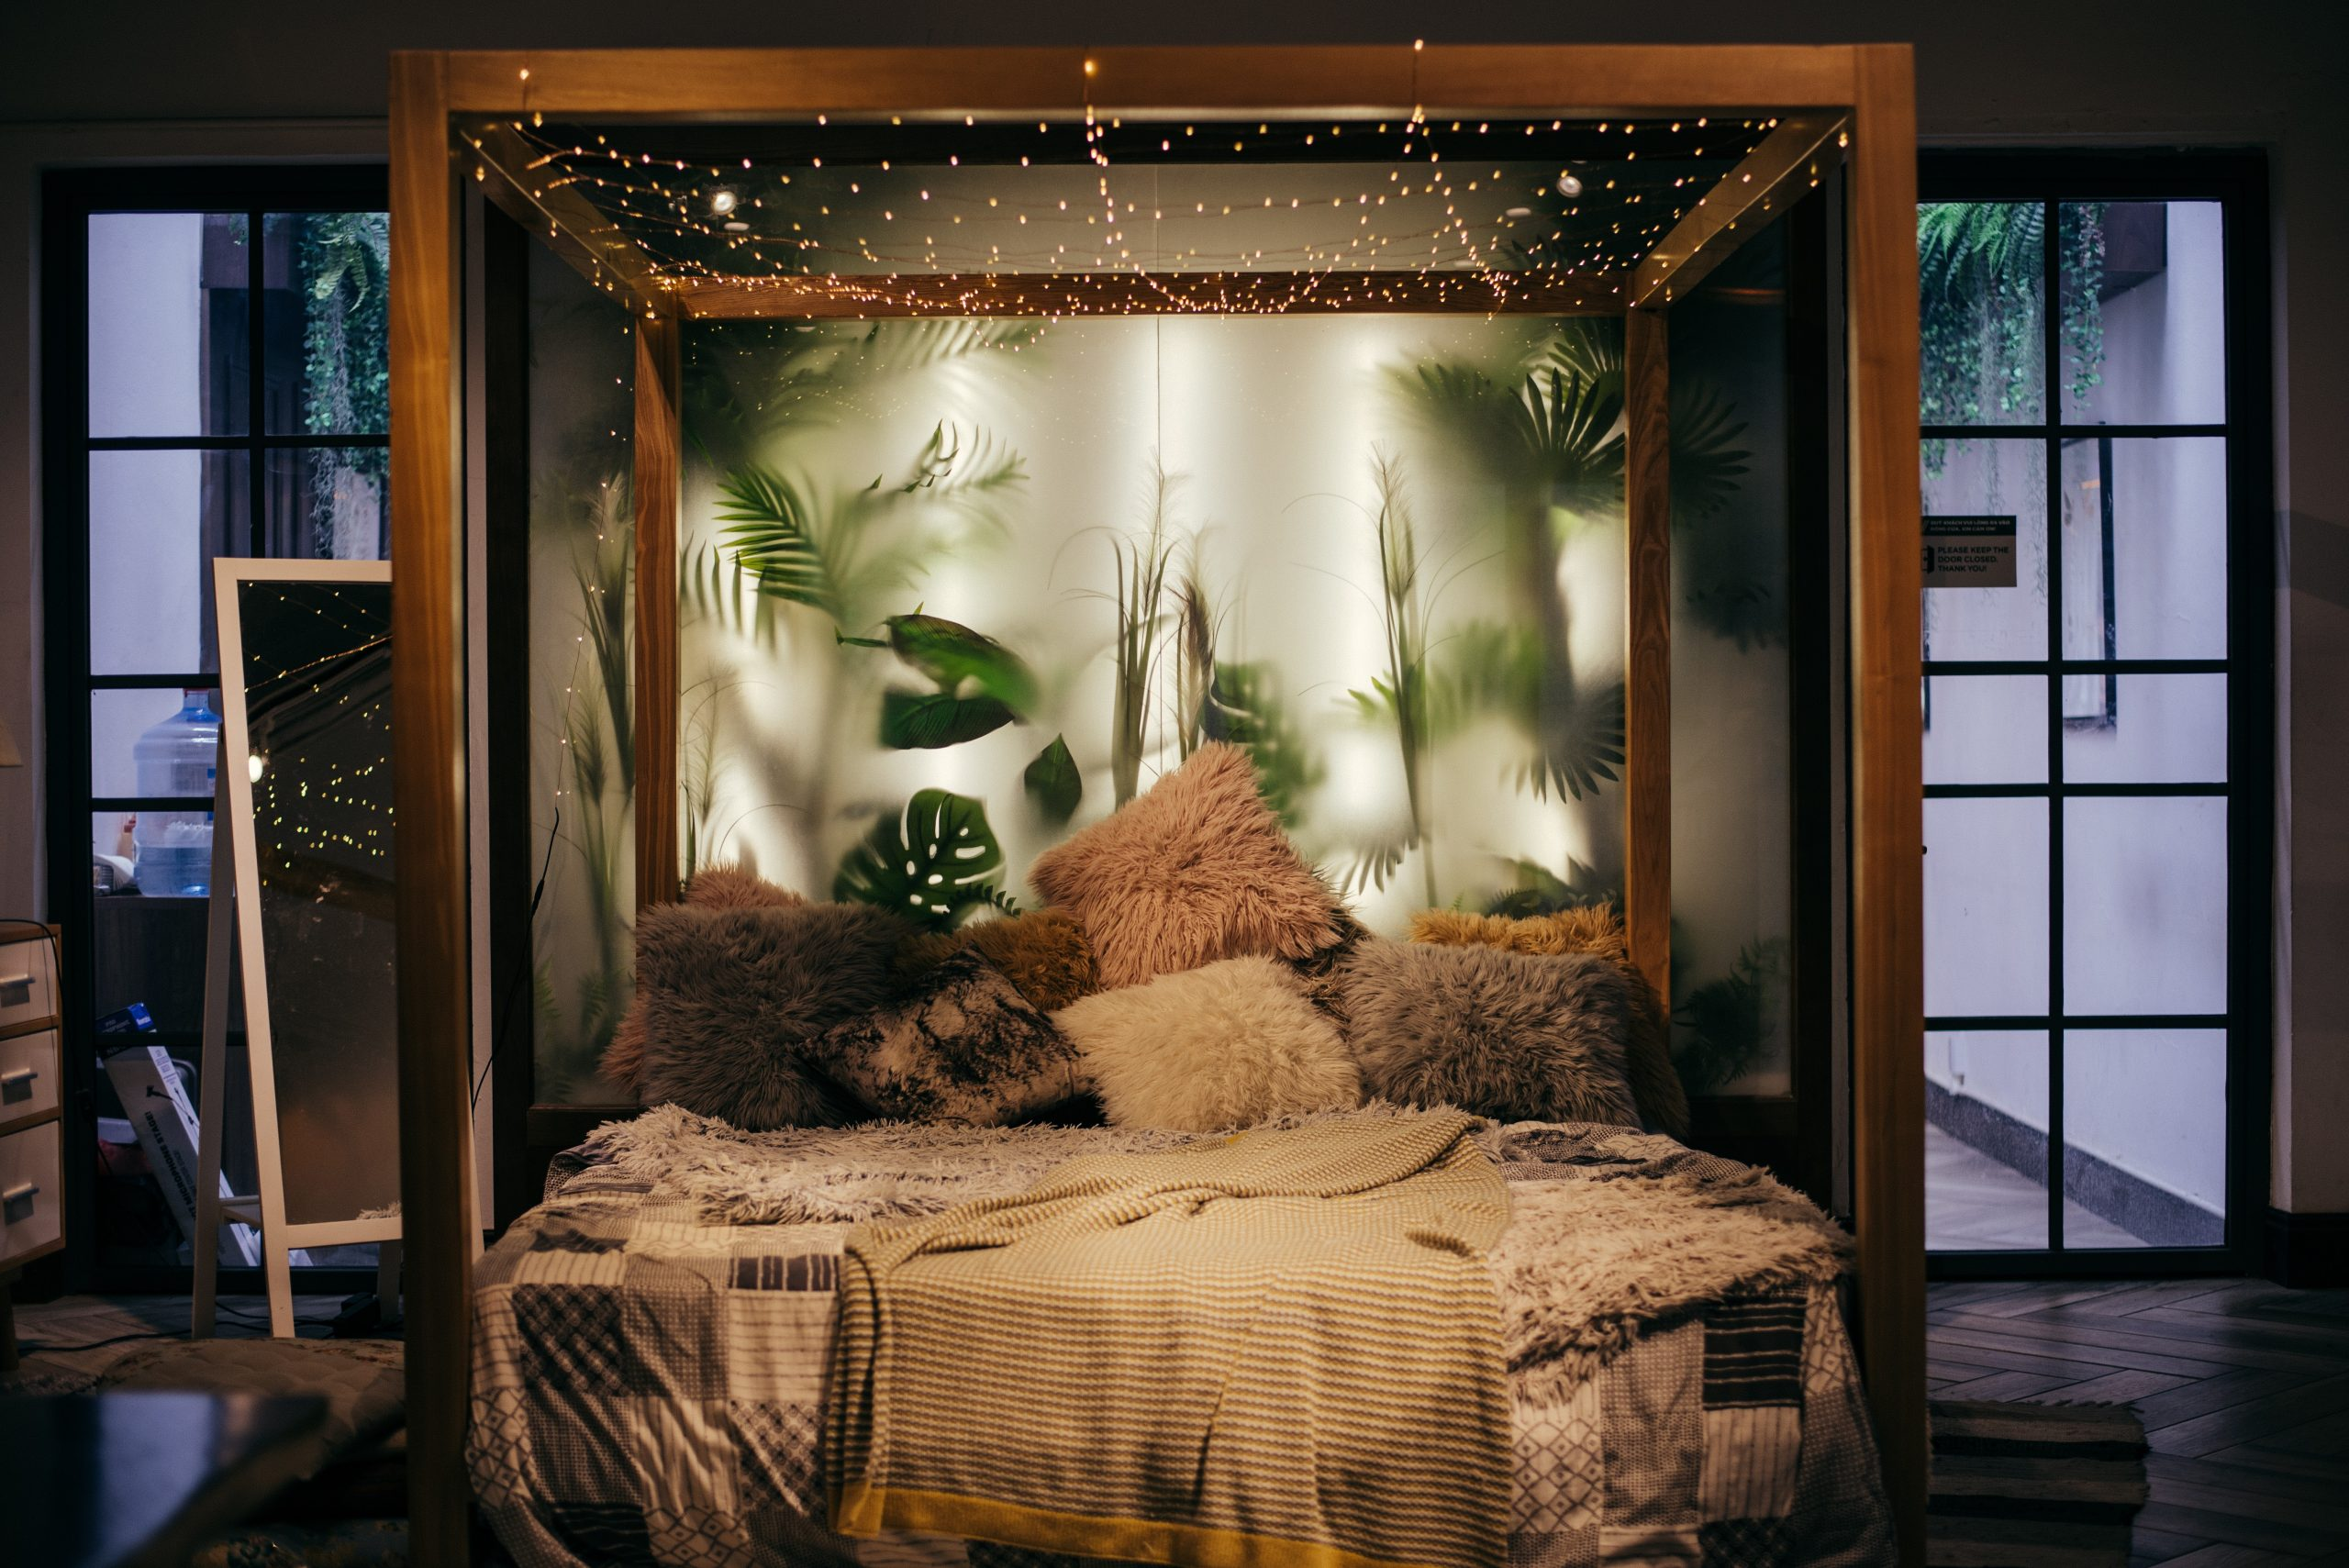 Best Bedroom Makeover Tips for Charming Look within a Small Budget